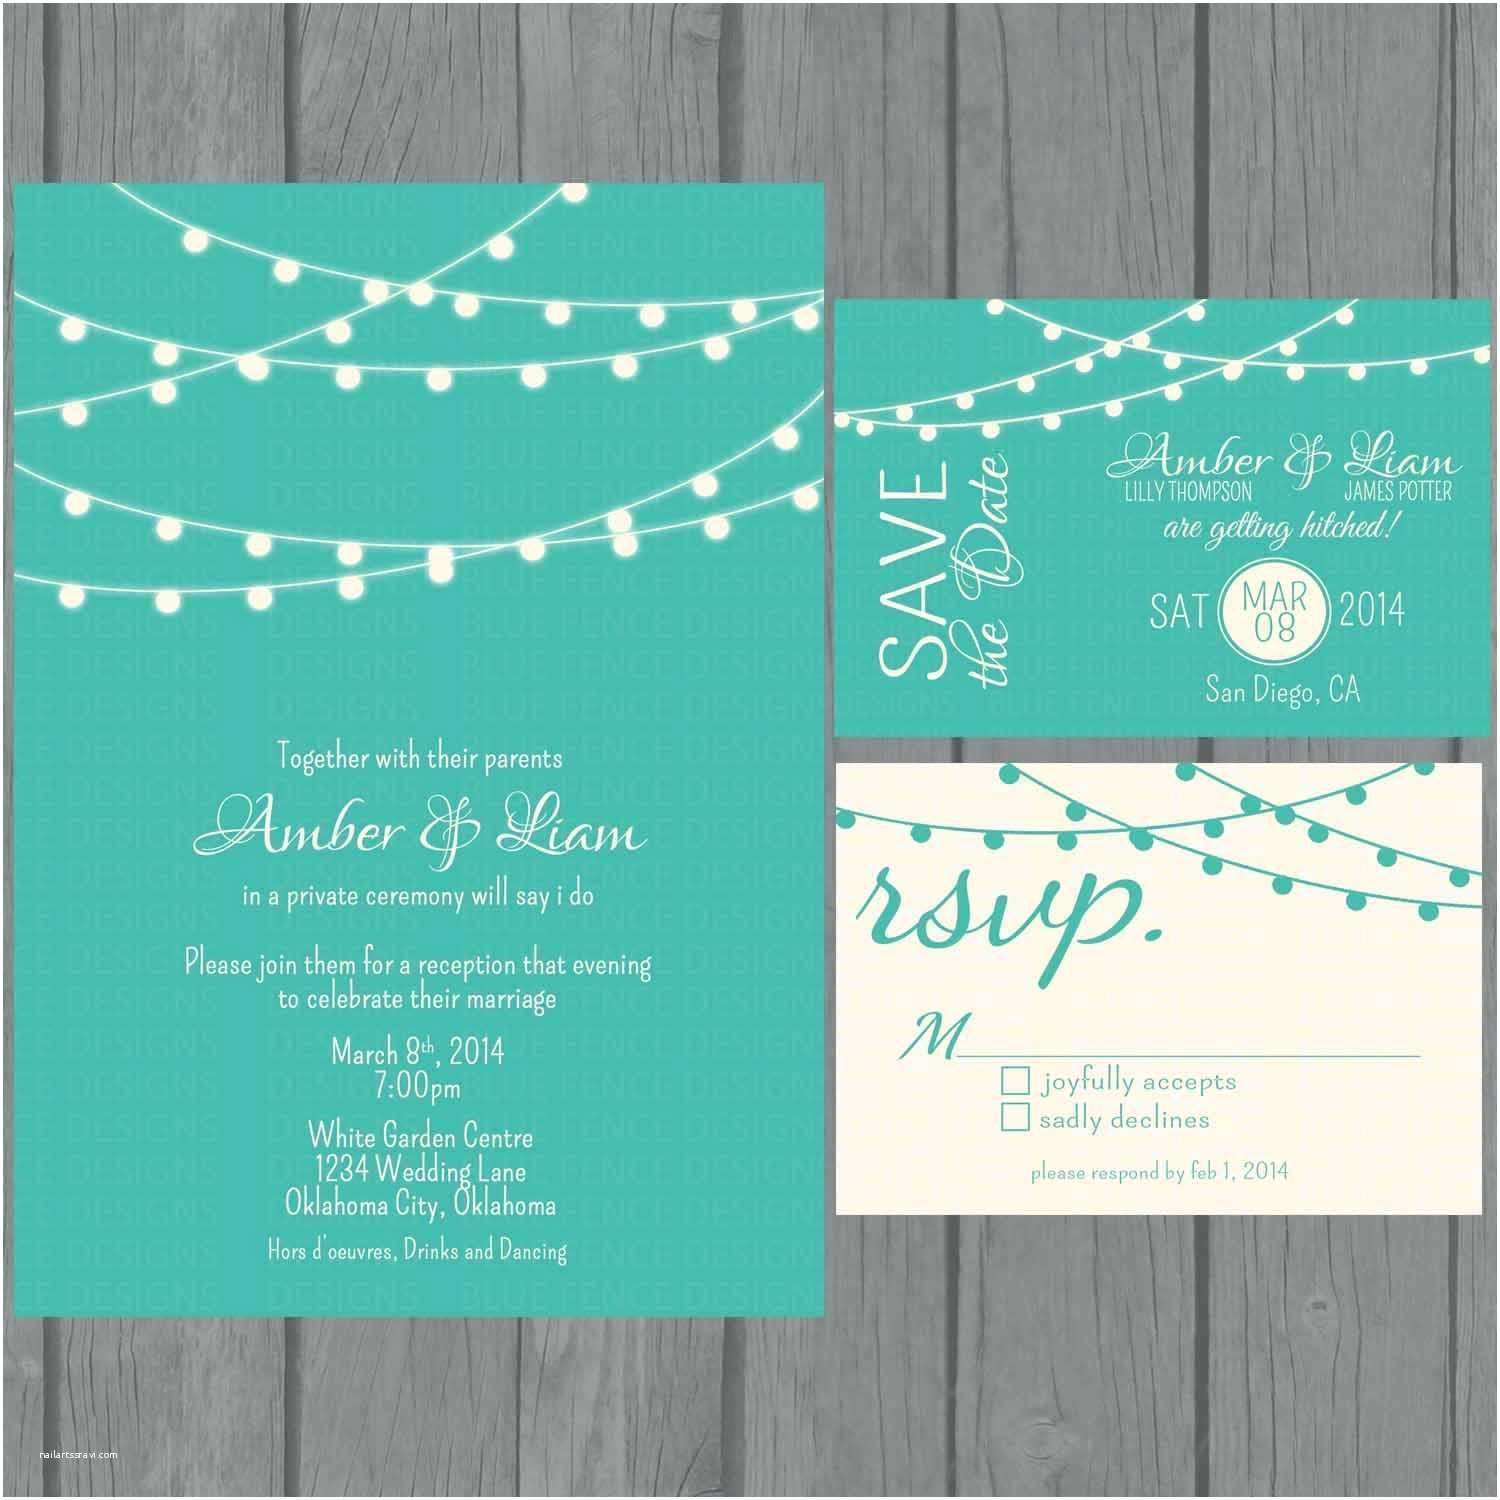 Seal and Send Wedding Invitations Vistaprint Elegant Standard Wedding Invitation